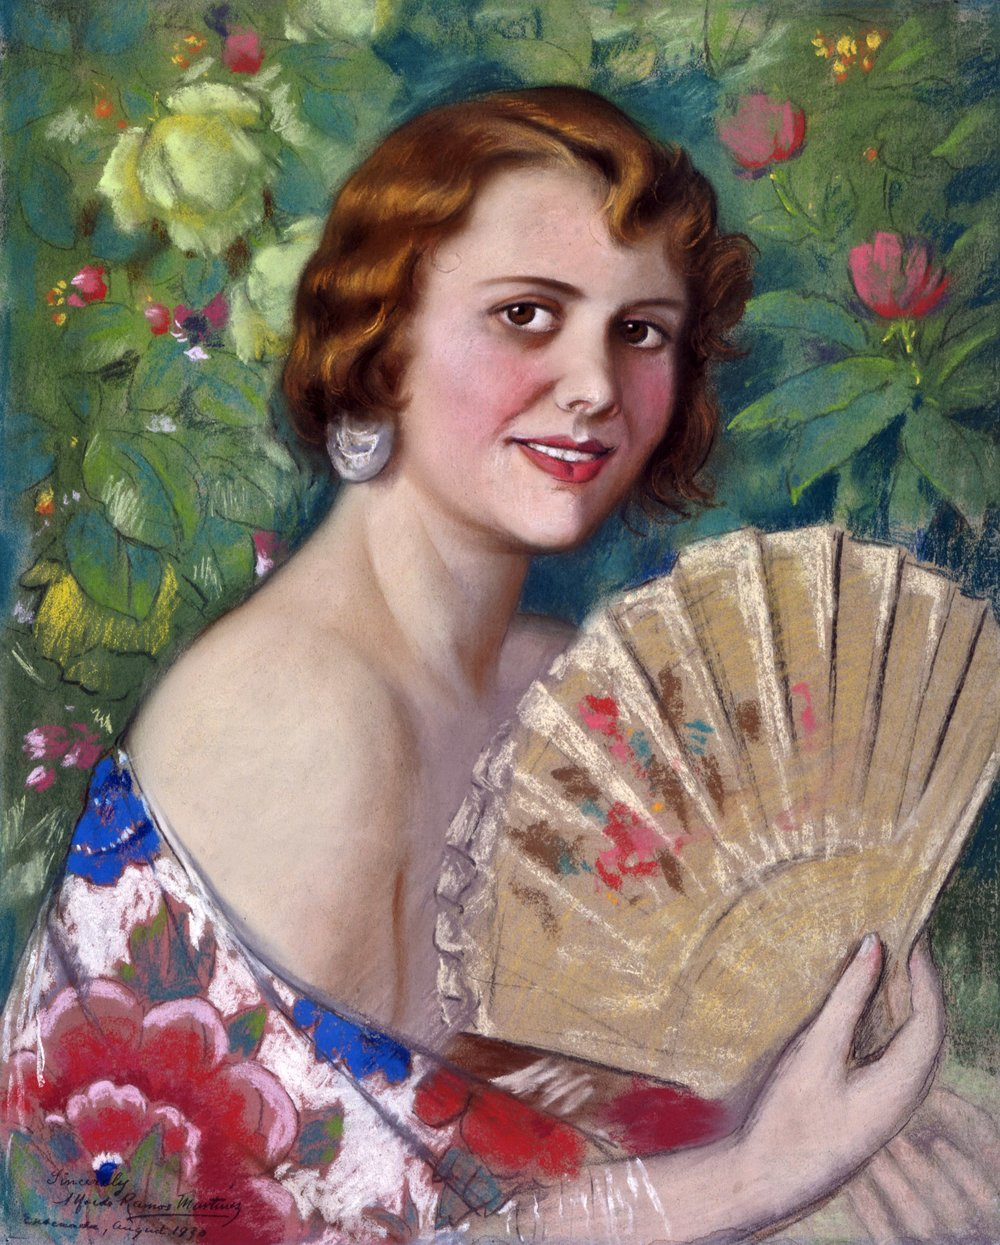 Marguerita en Flores  / Portrait of May C. Healy 1930 pastel on paper / pintura al pastel sobre papel 24 x 19.3 inches; 61 x 49 centímetros Private collection